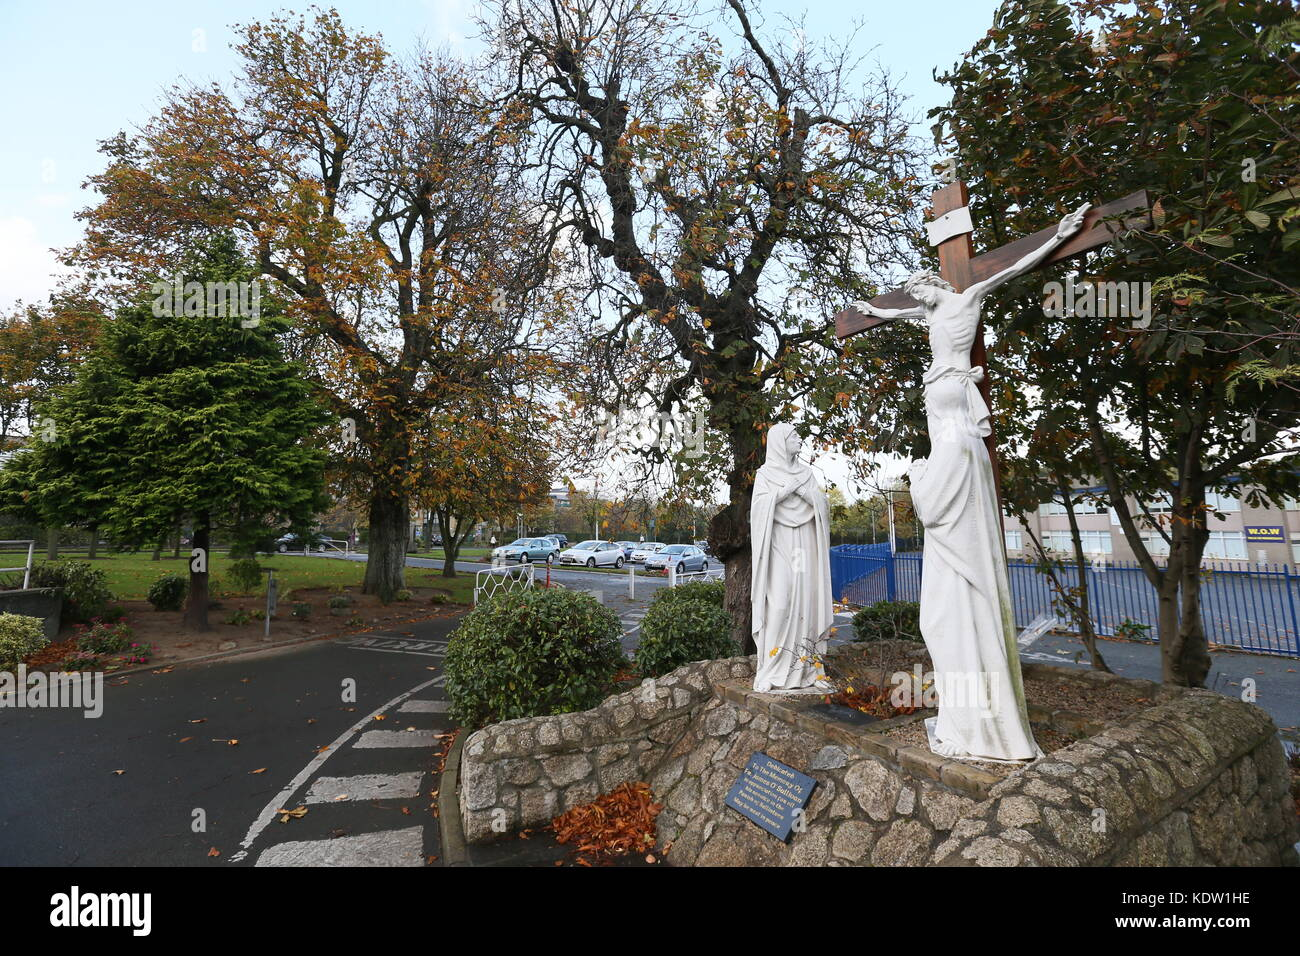 Dublin, Ireland. 16th Oct, 2017. A view of a statue of Jesus Christ in Ballinteer in South Dublin during the build - Stock Image